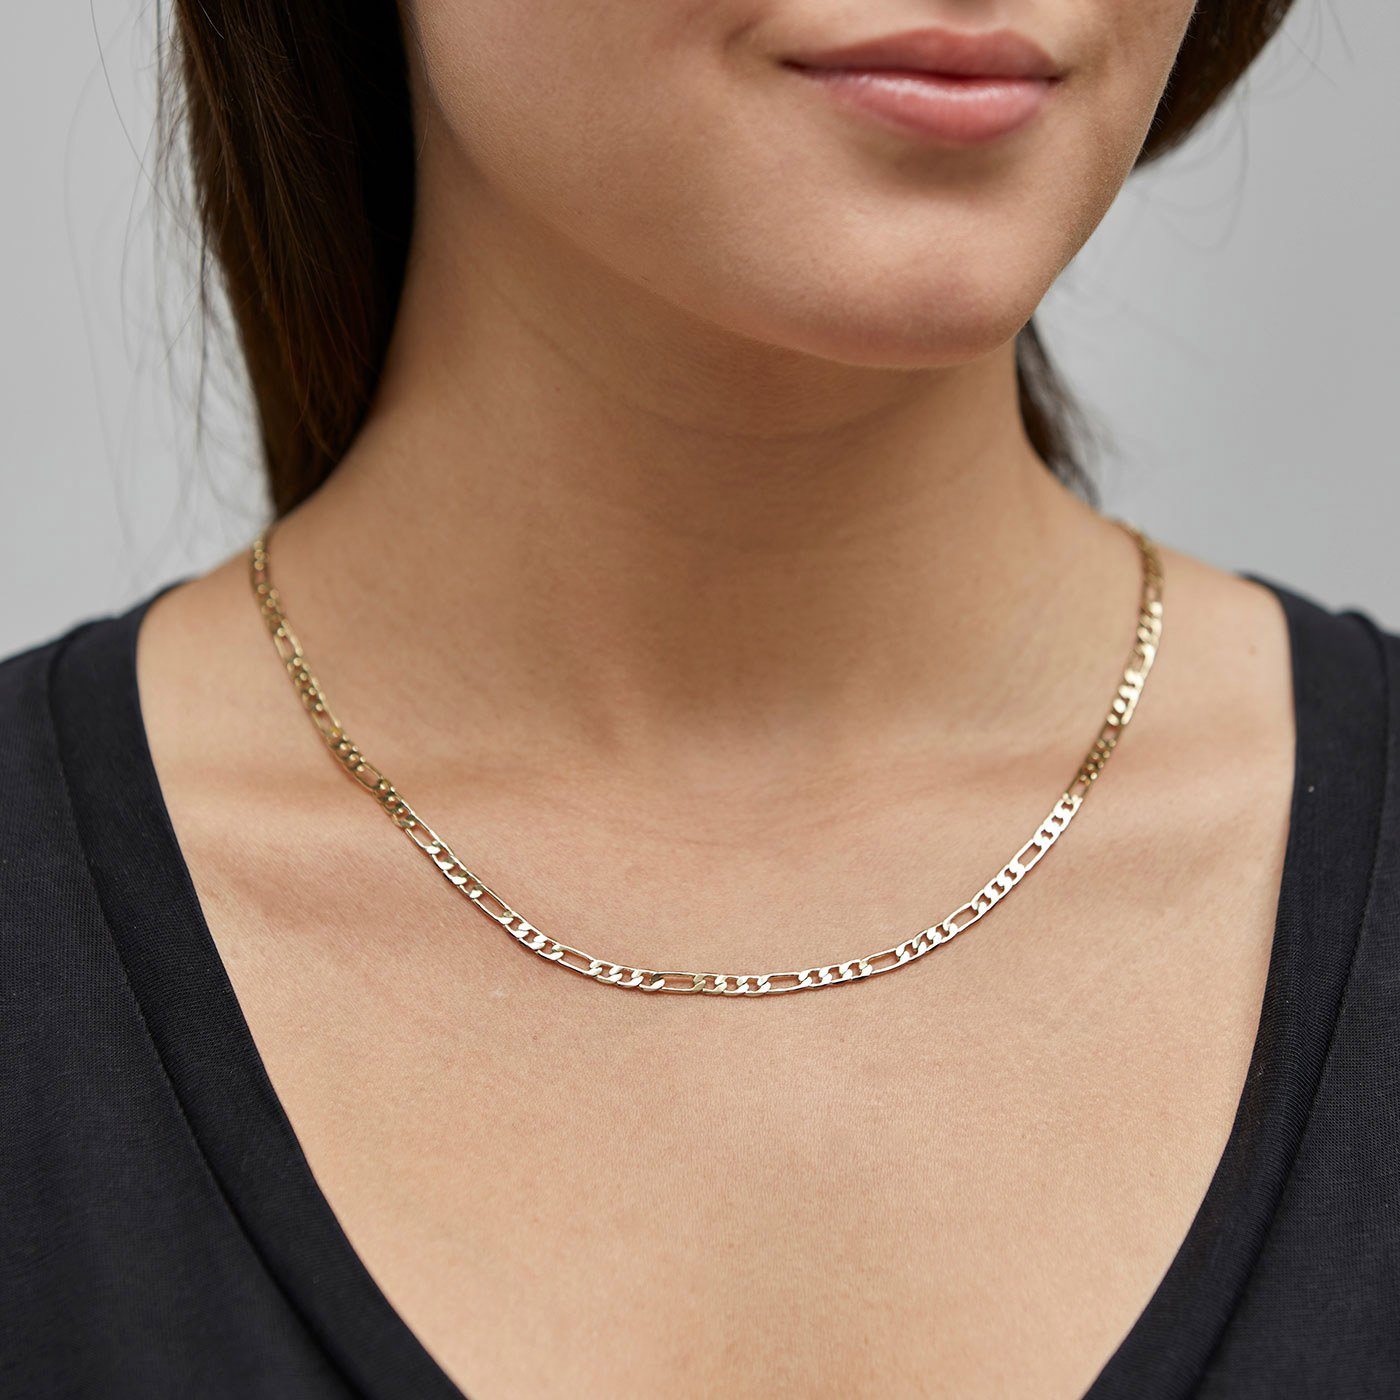 Dale Necklace - Gold Plated